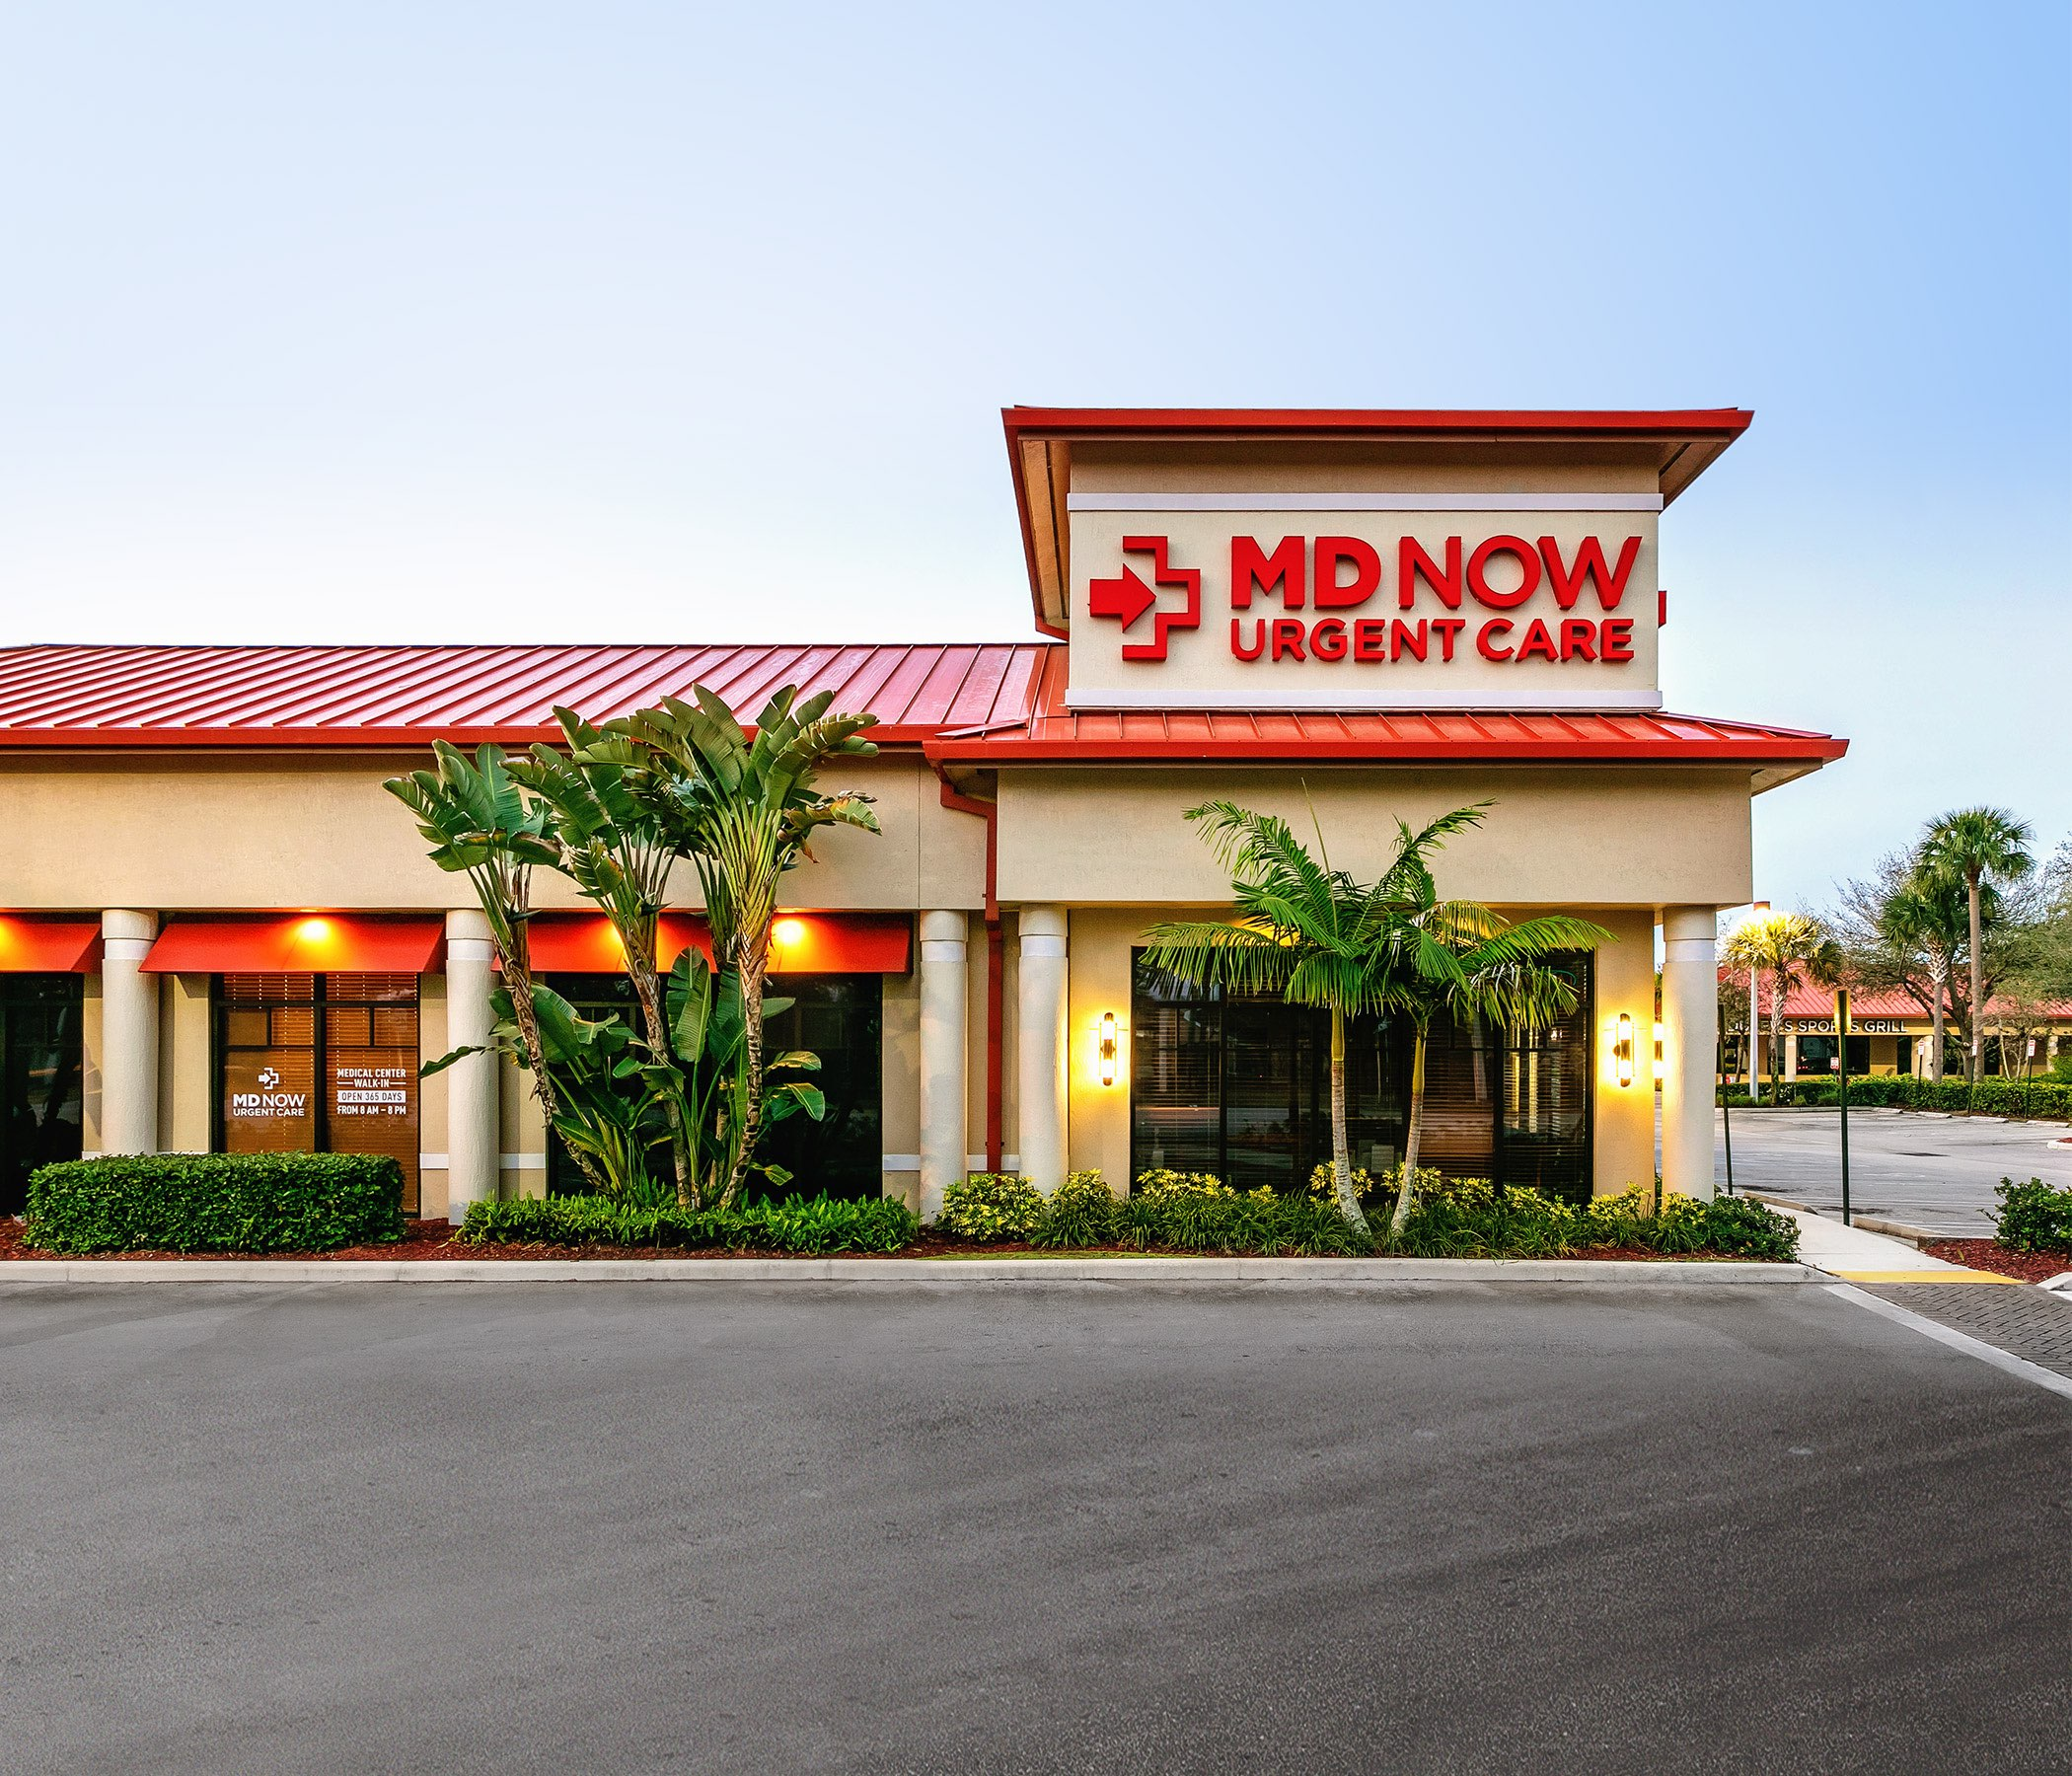 Palm Springs Greenacres Urgent Care Md Now